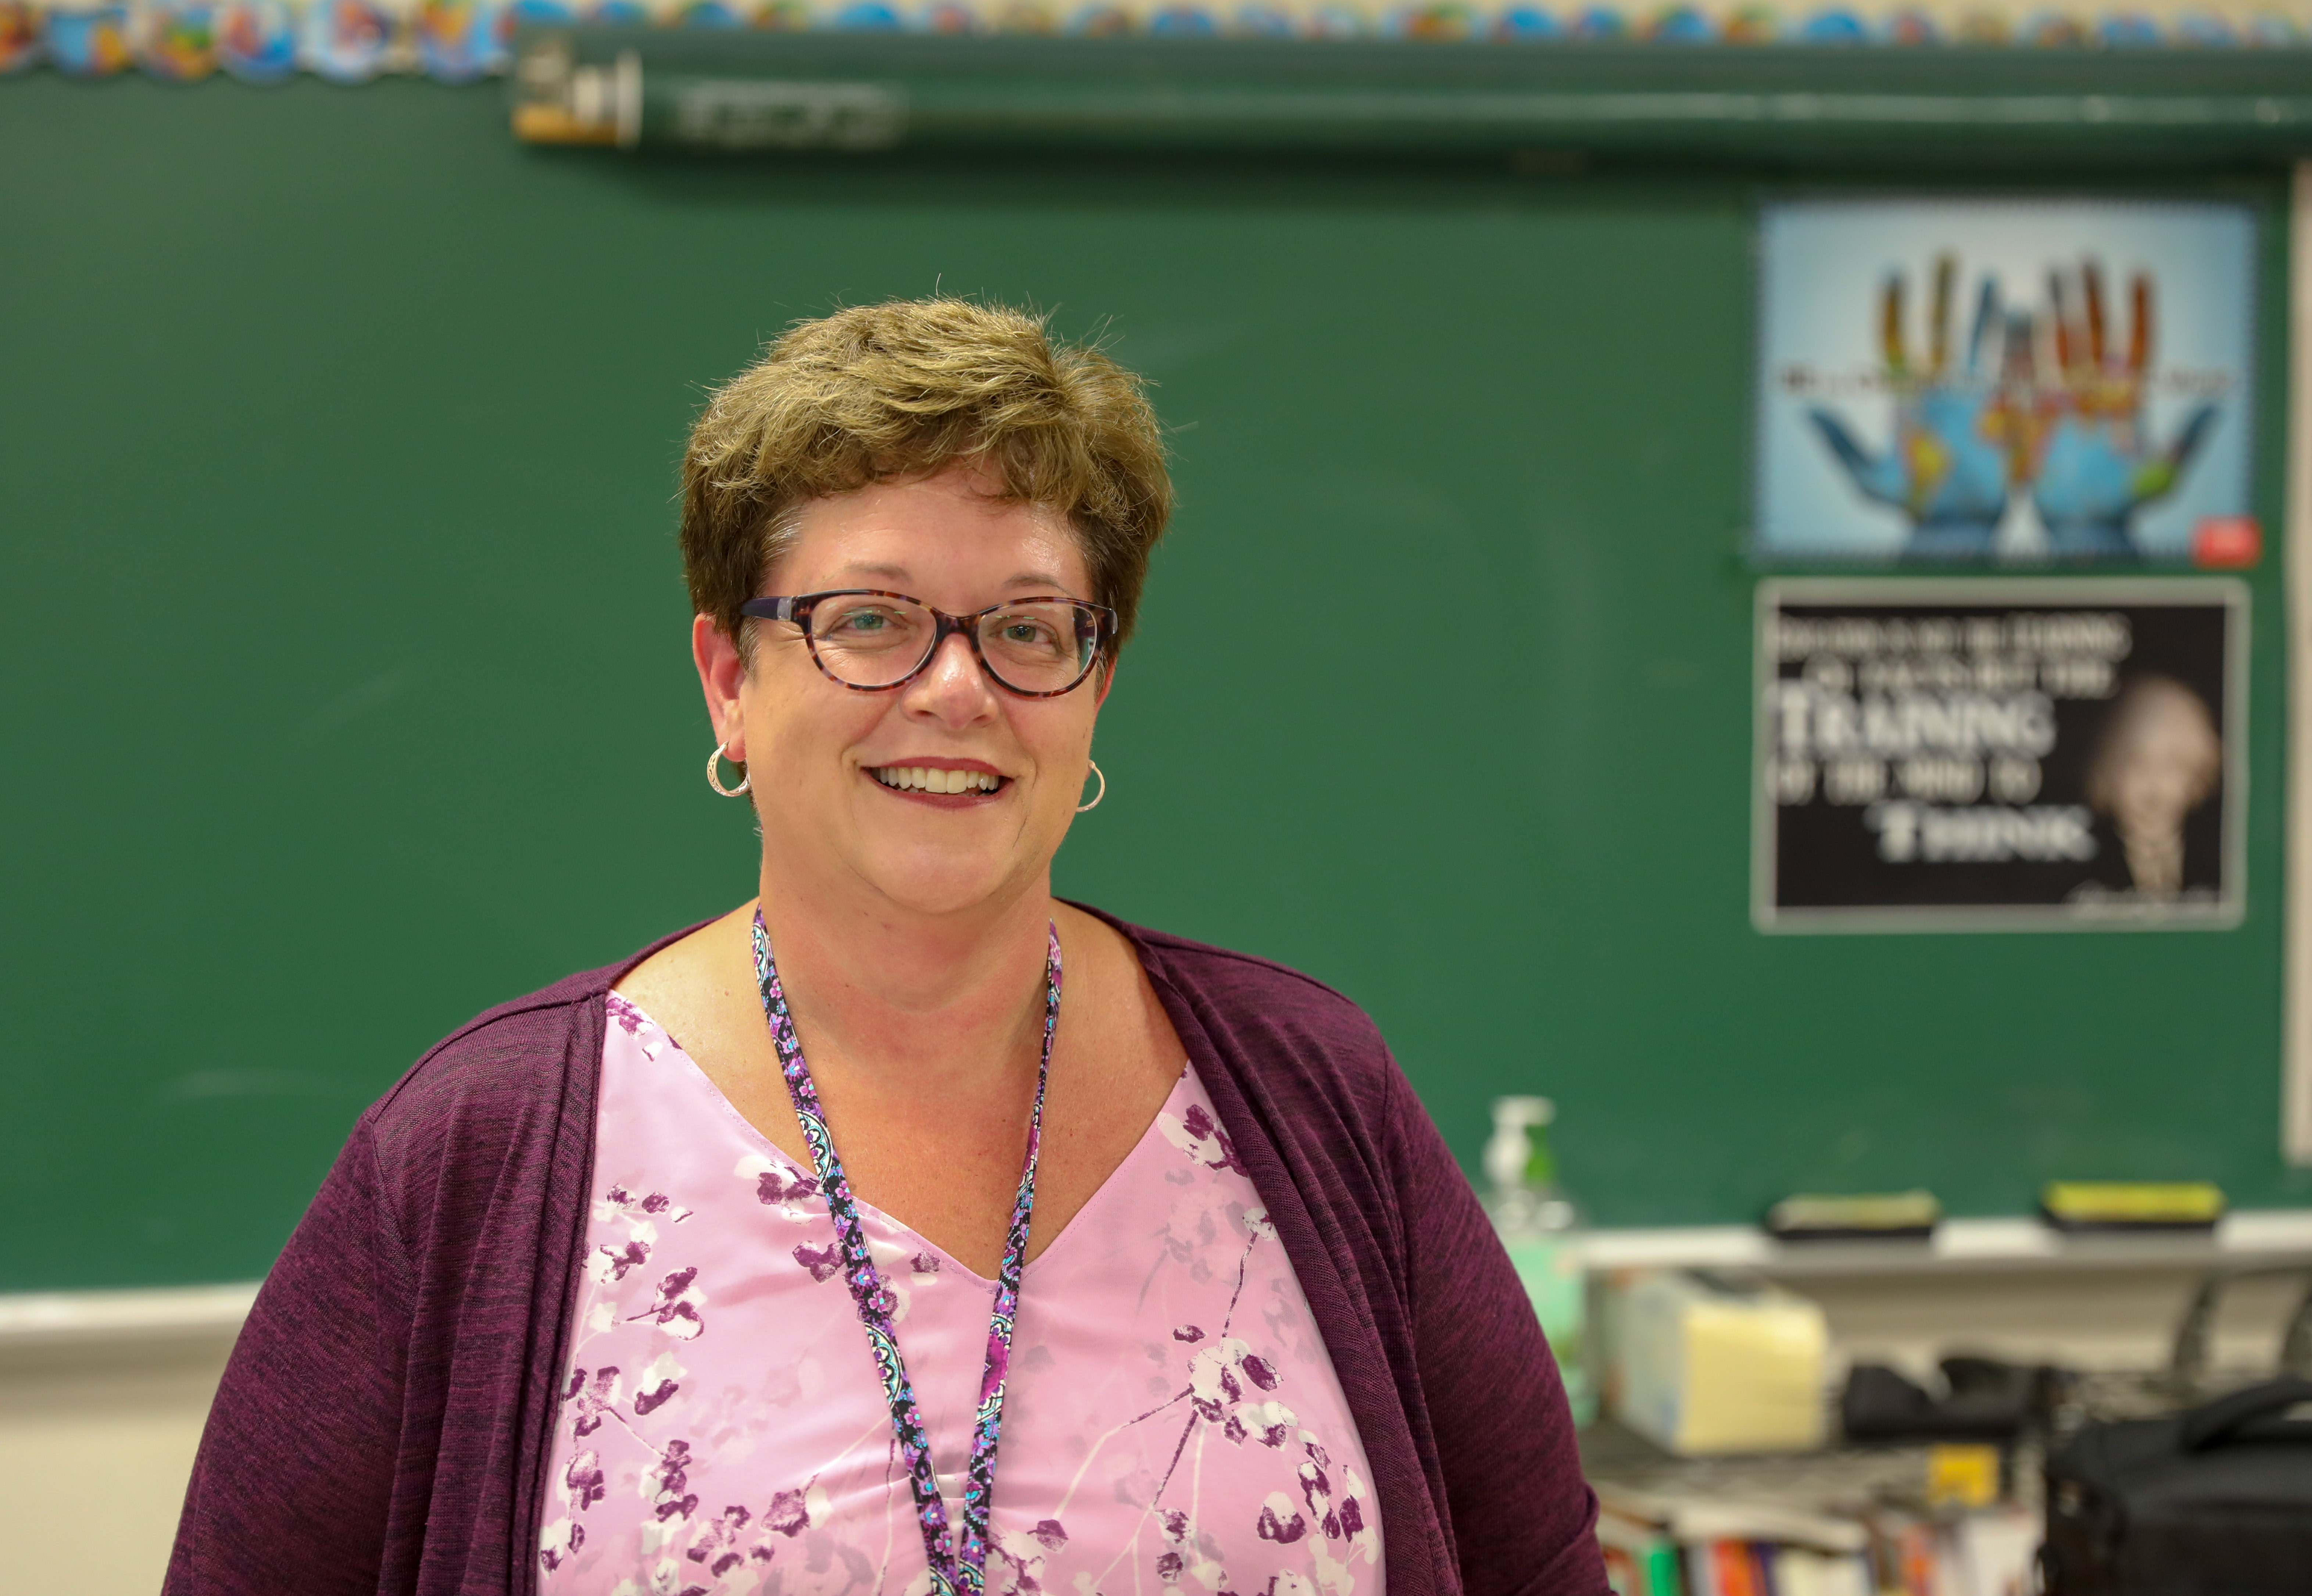 Hills East's Ms. Cullen Selected To Create Project Based Learning Unit For Students Rebuild